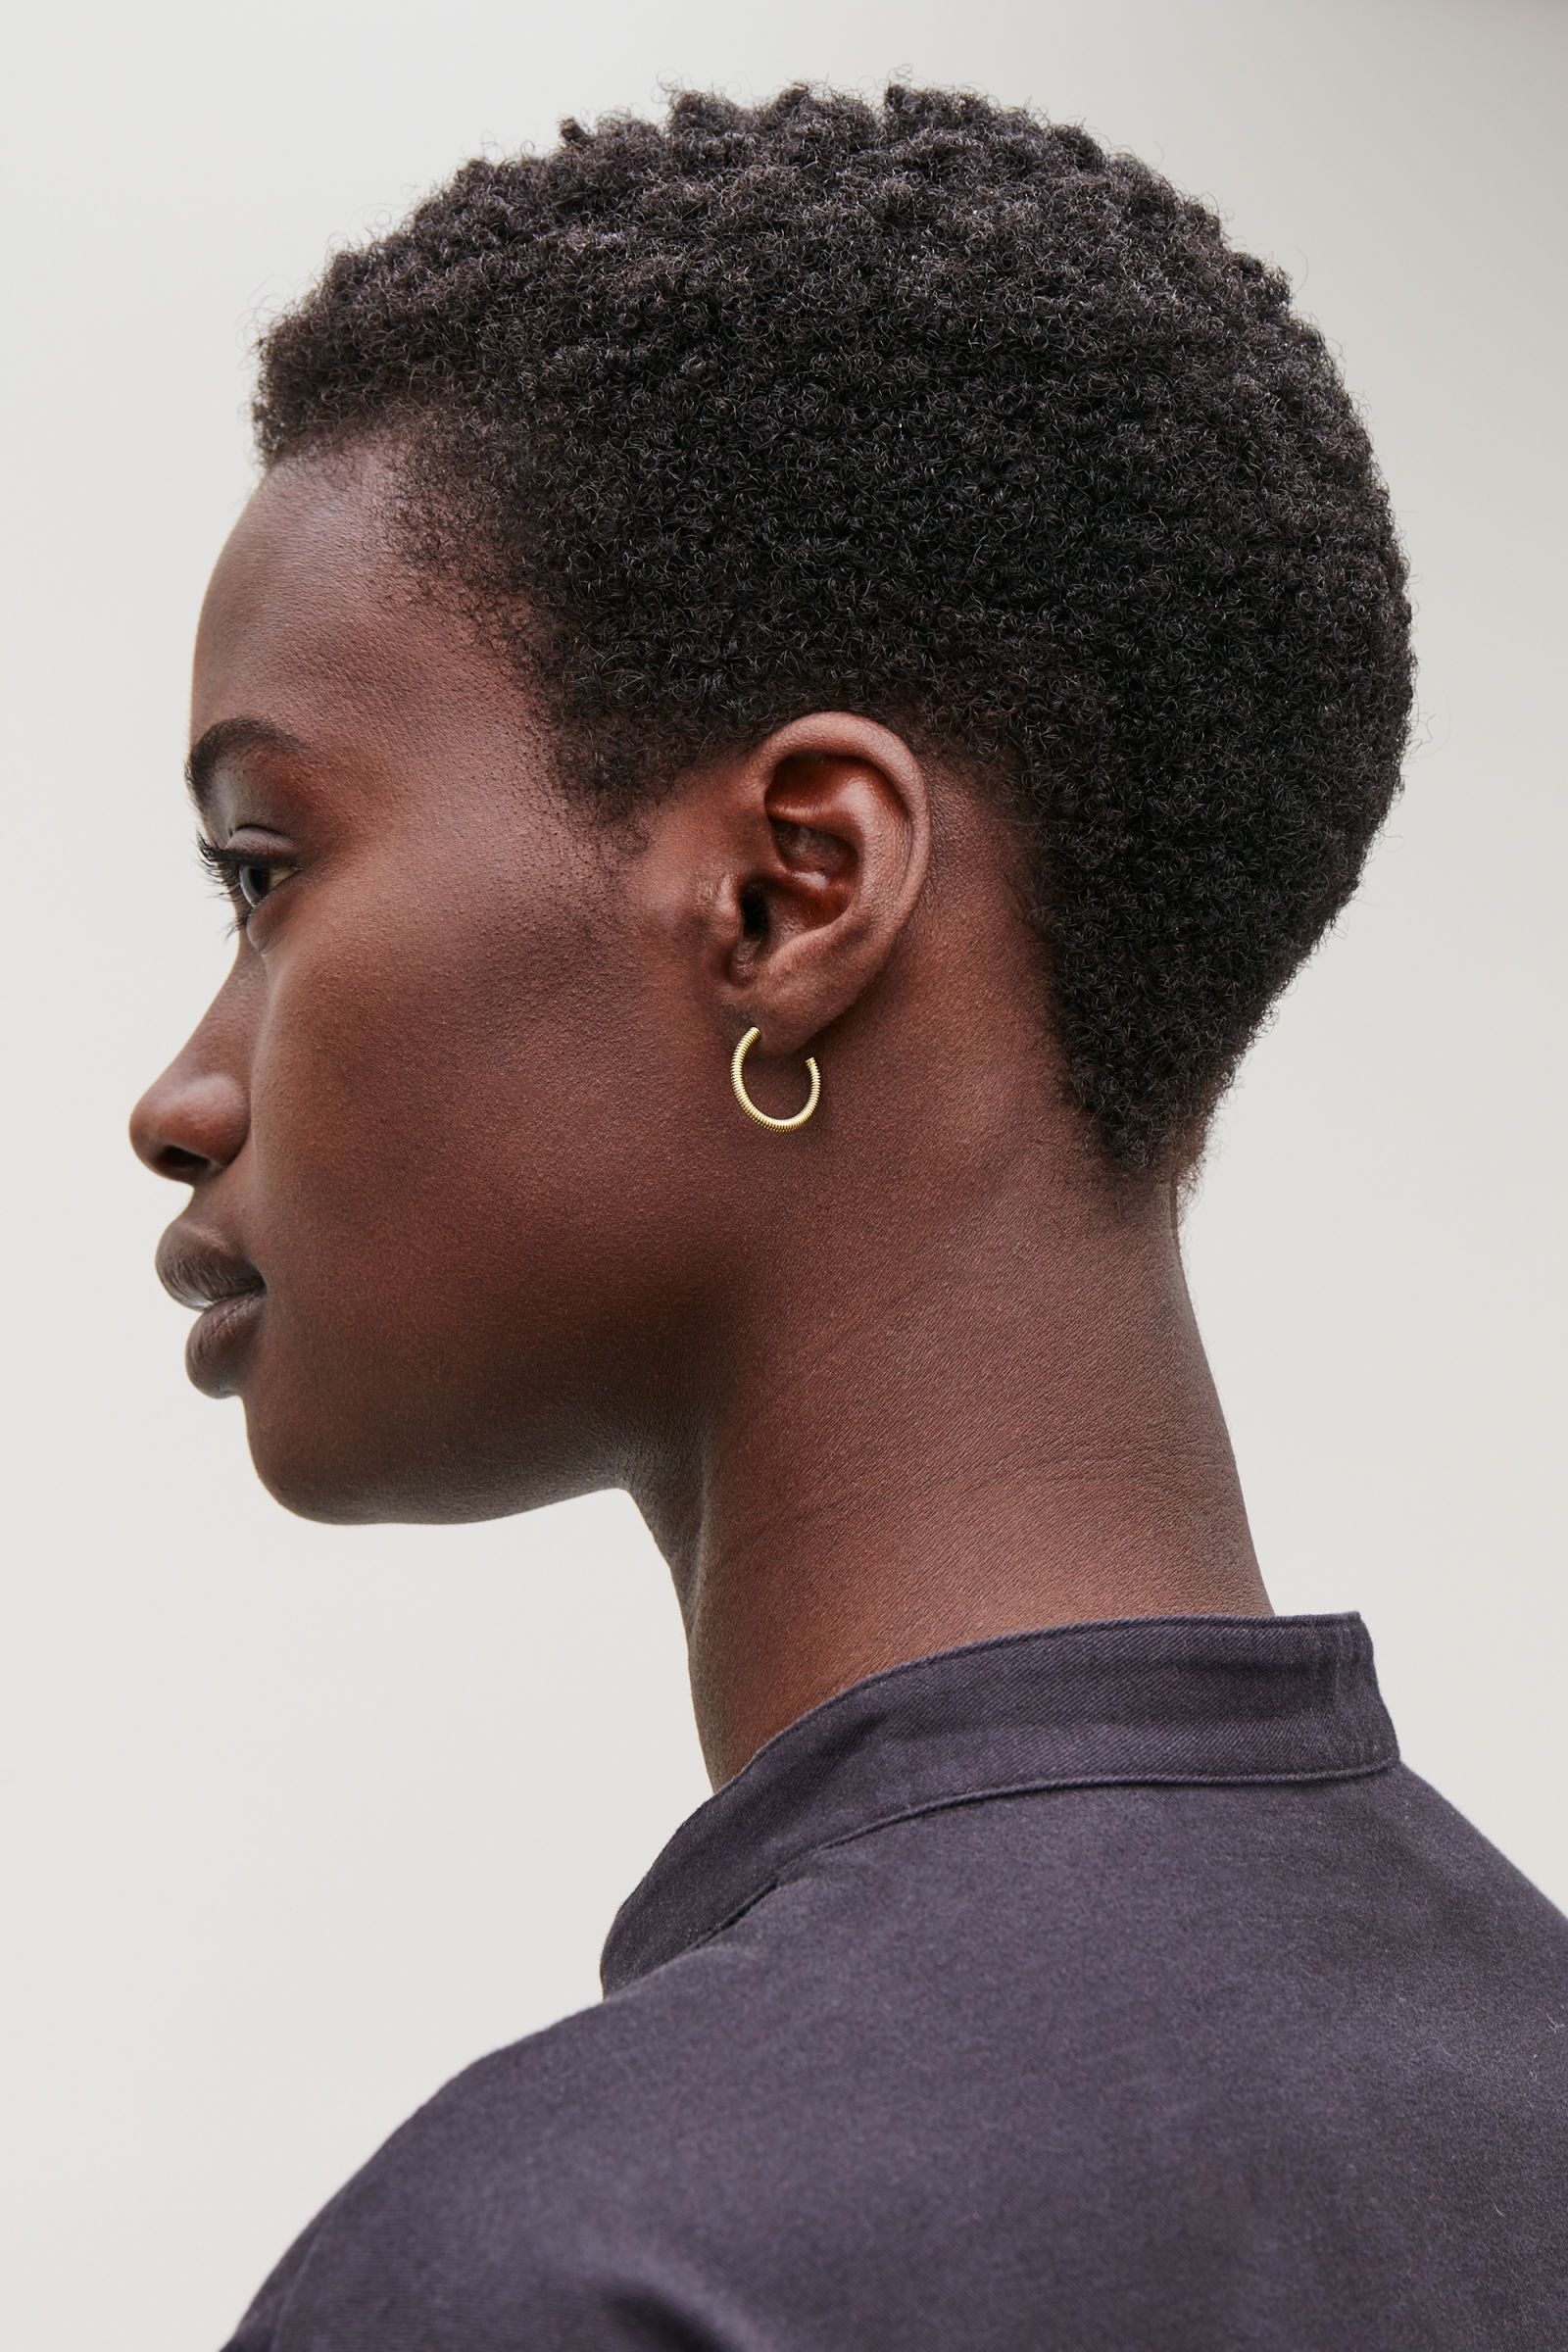 Productpage Cos Productpage Cos In 2020 Short Hair Styles Natural Hair Styles Hair Styles